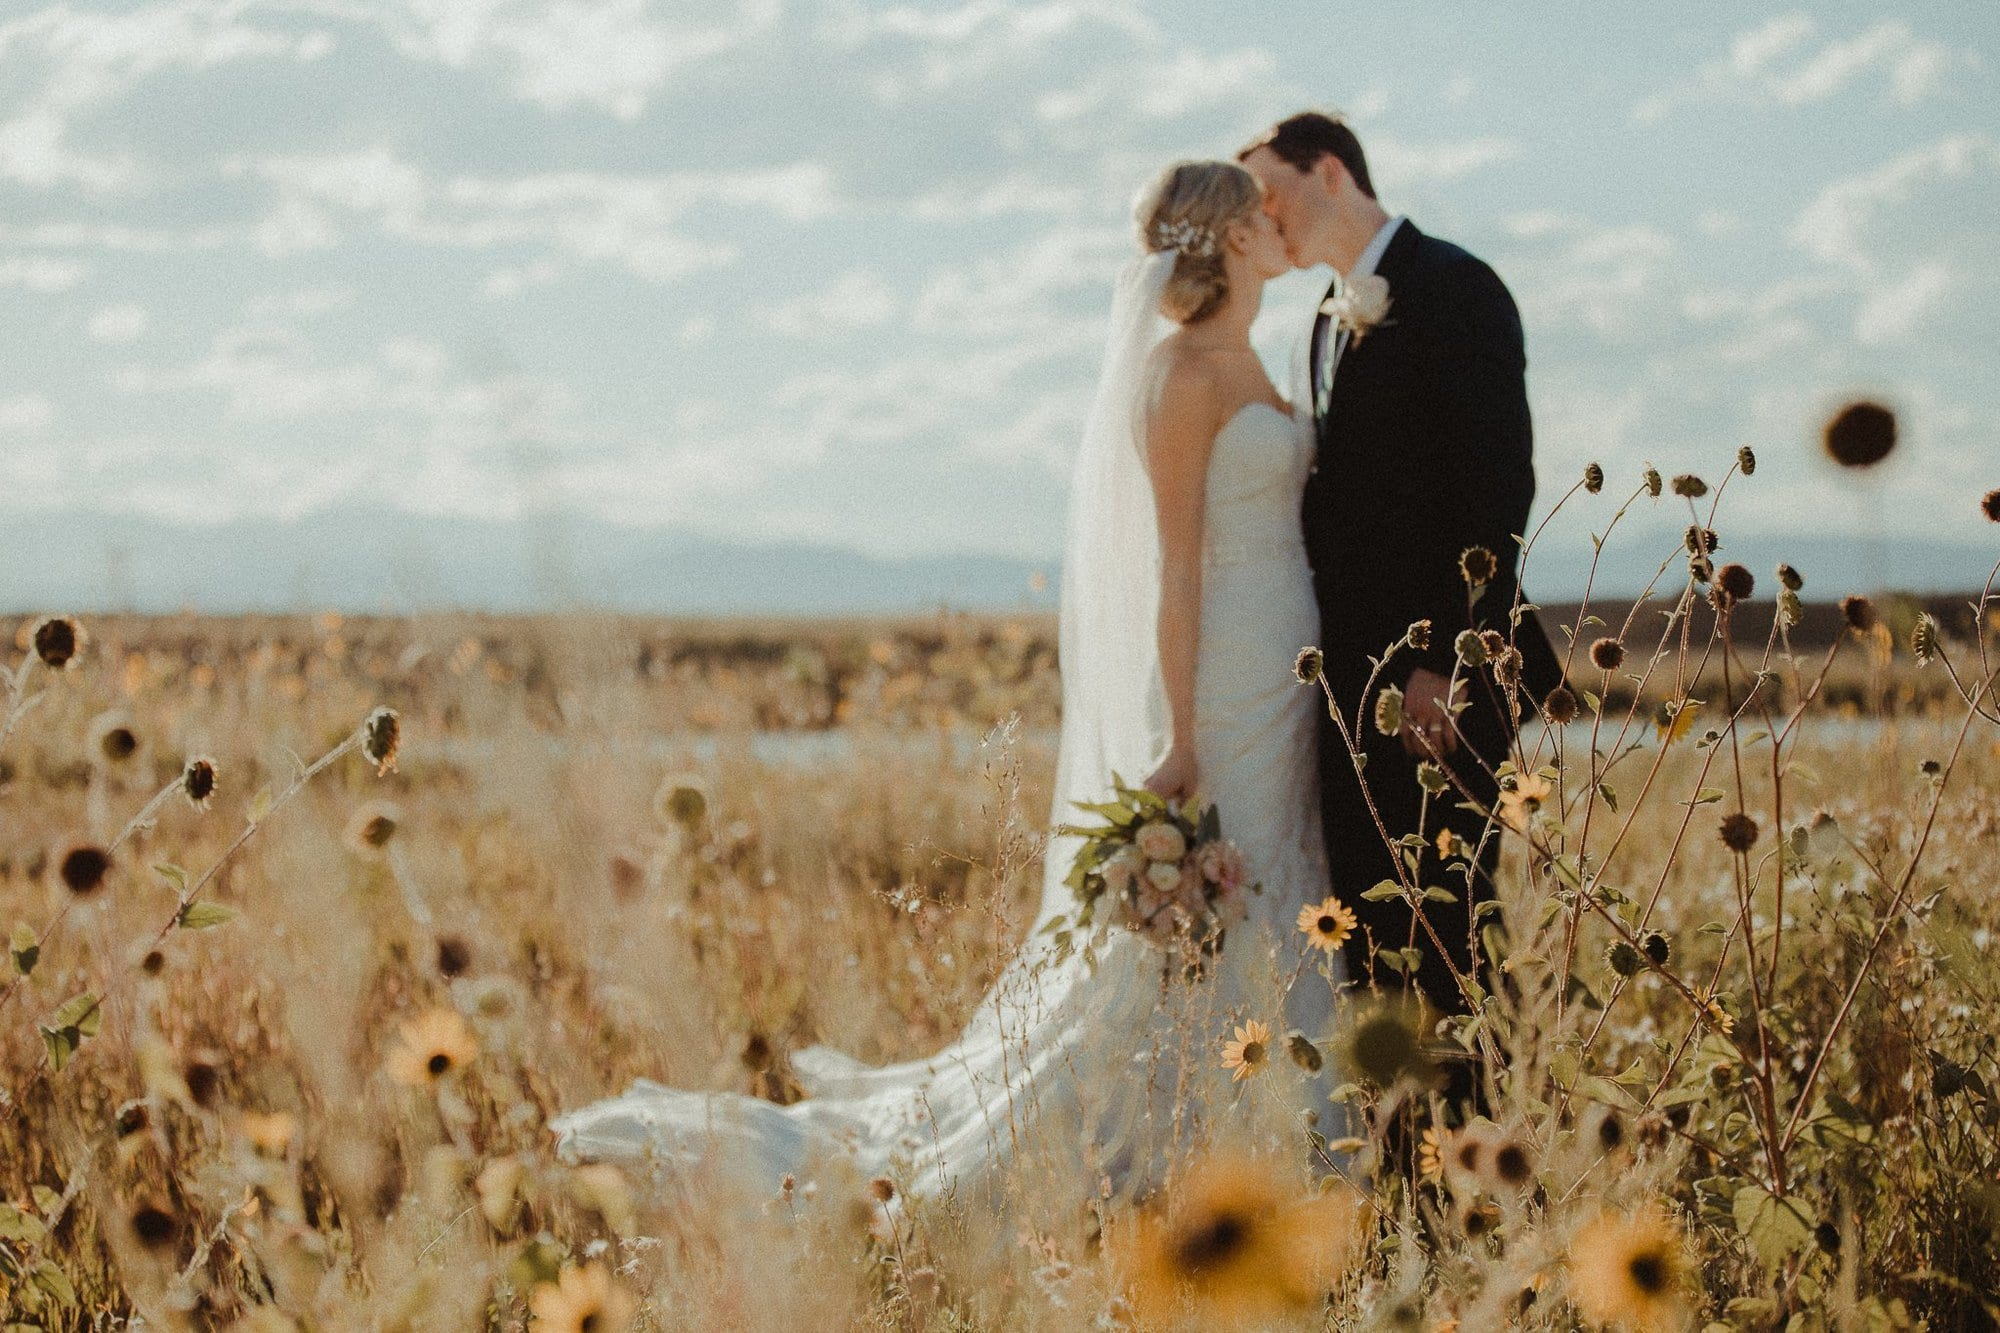 Highland Meadows Golf Course Wedding I Cara + Steve I Colorado Wedding Photographer, Justyna E Butler Photography is a wedding photographer from Denver, CO